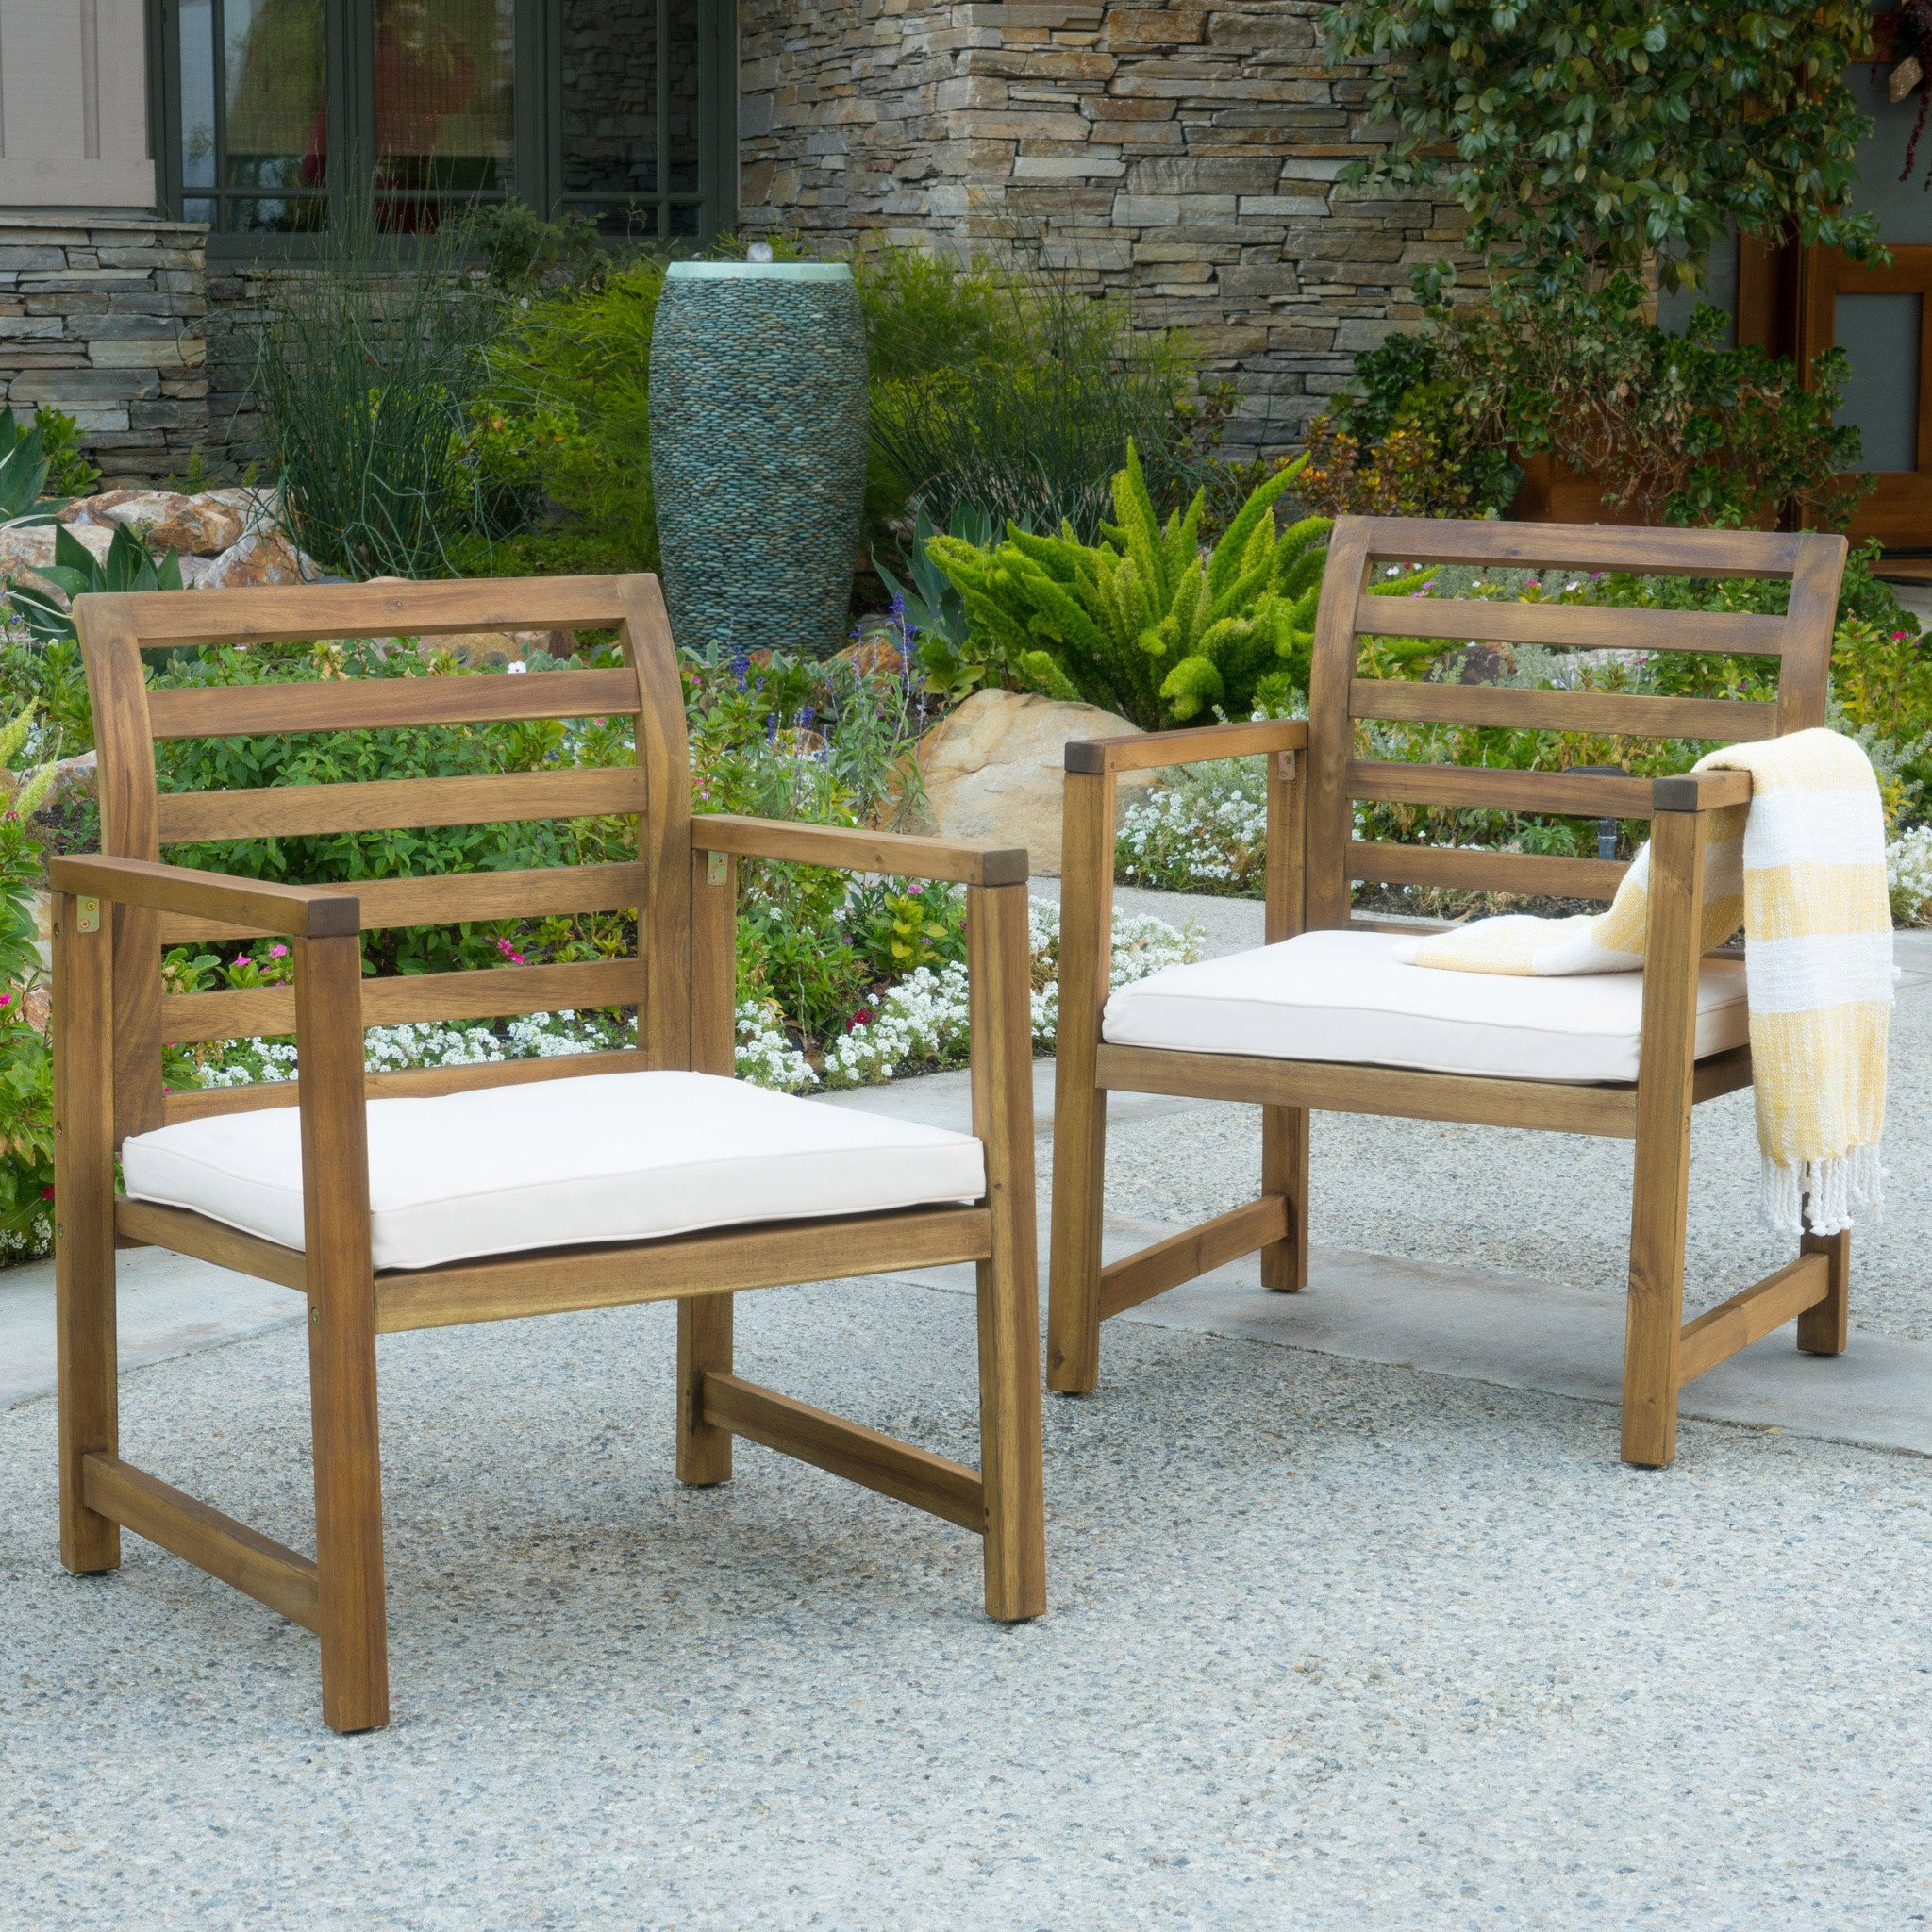 Eveleigh Coastal Outdoor Natural Stained Acacia Wo...